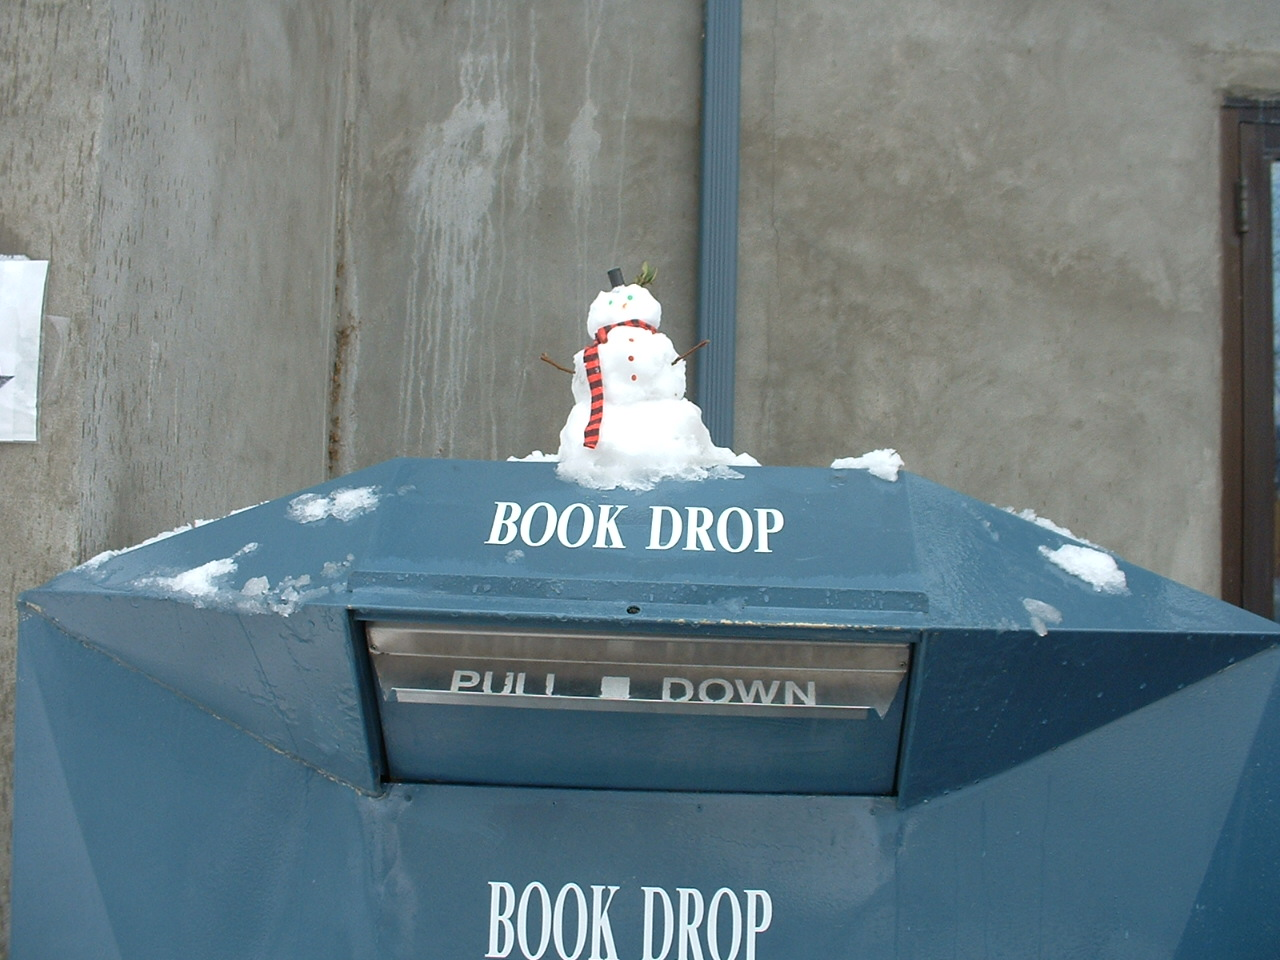 small-snowman-on-book-drop-by-ada-community-library